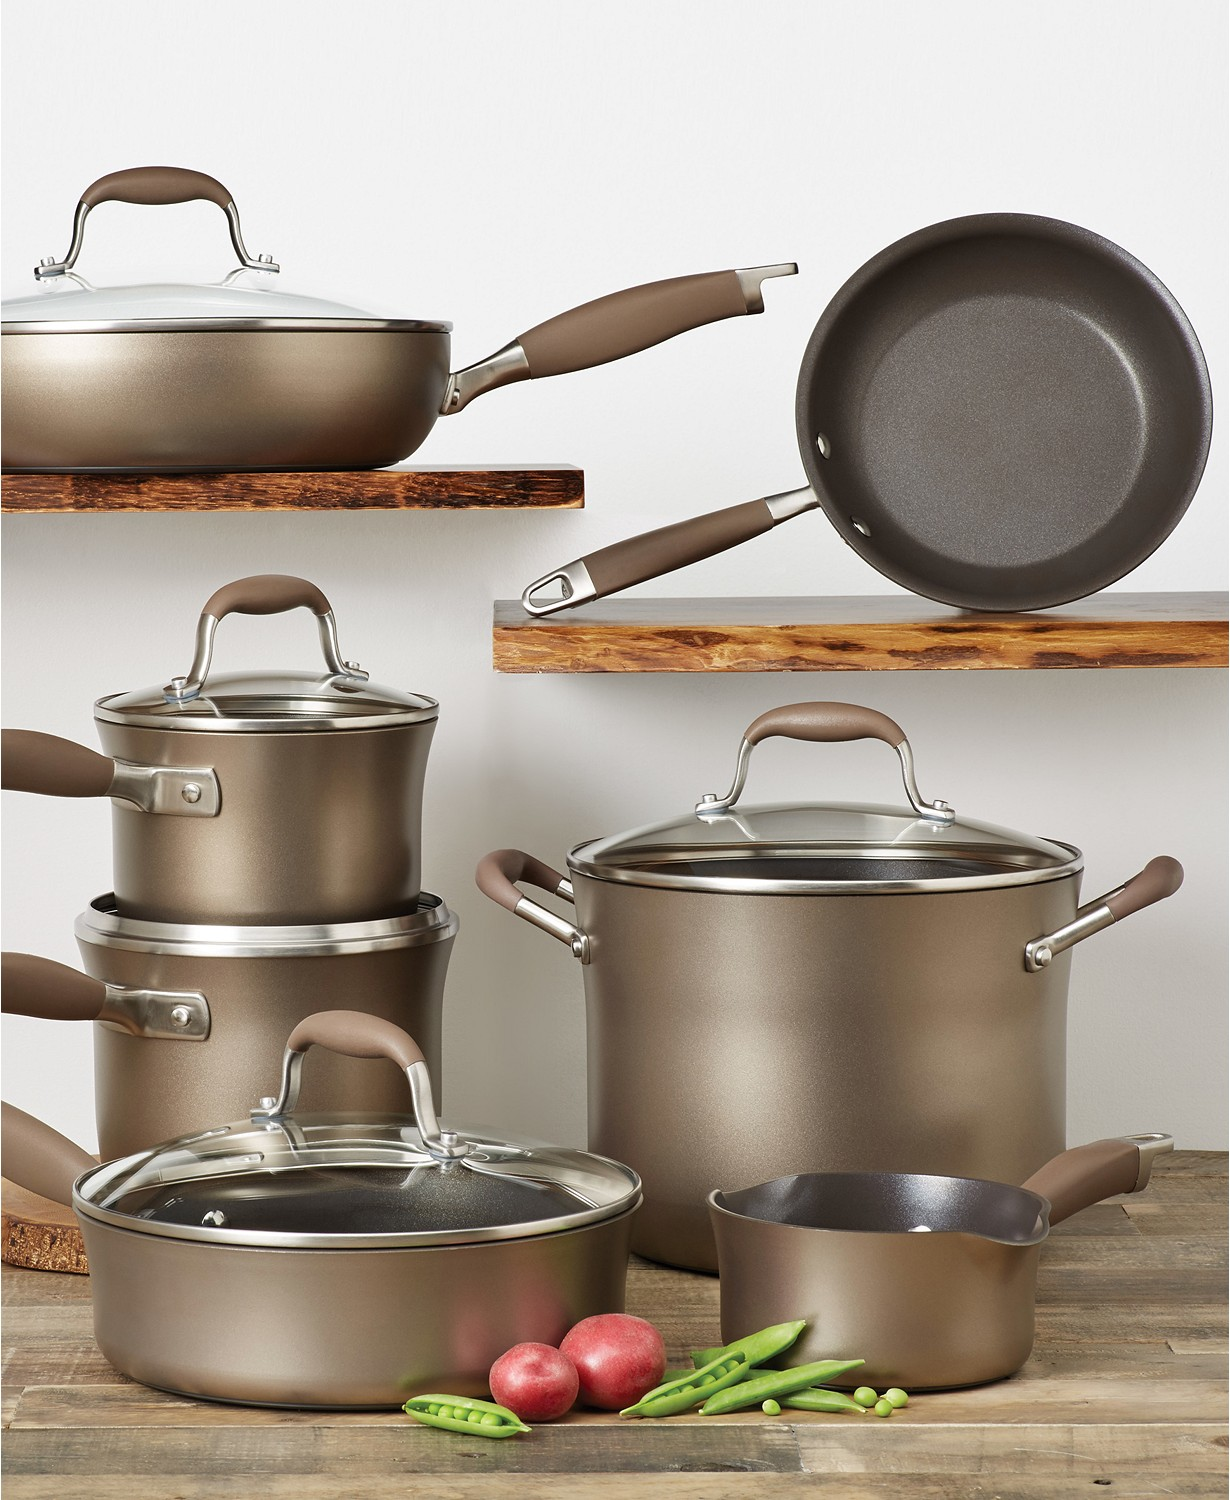 Save 28% on Anolon Advanced Bronze Hard-Anodized 12-Pc. Cookware Set